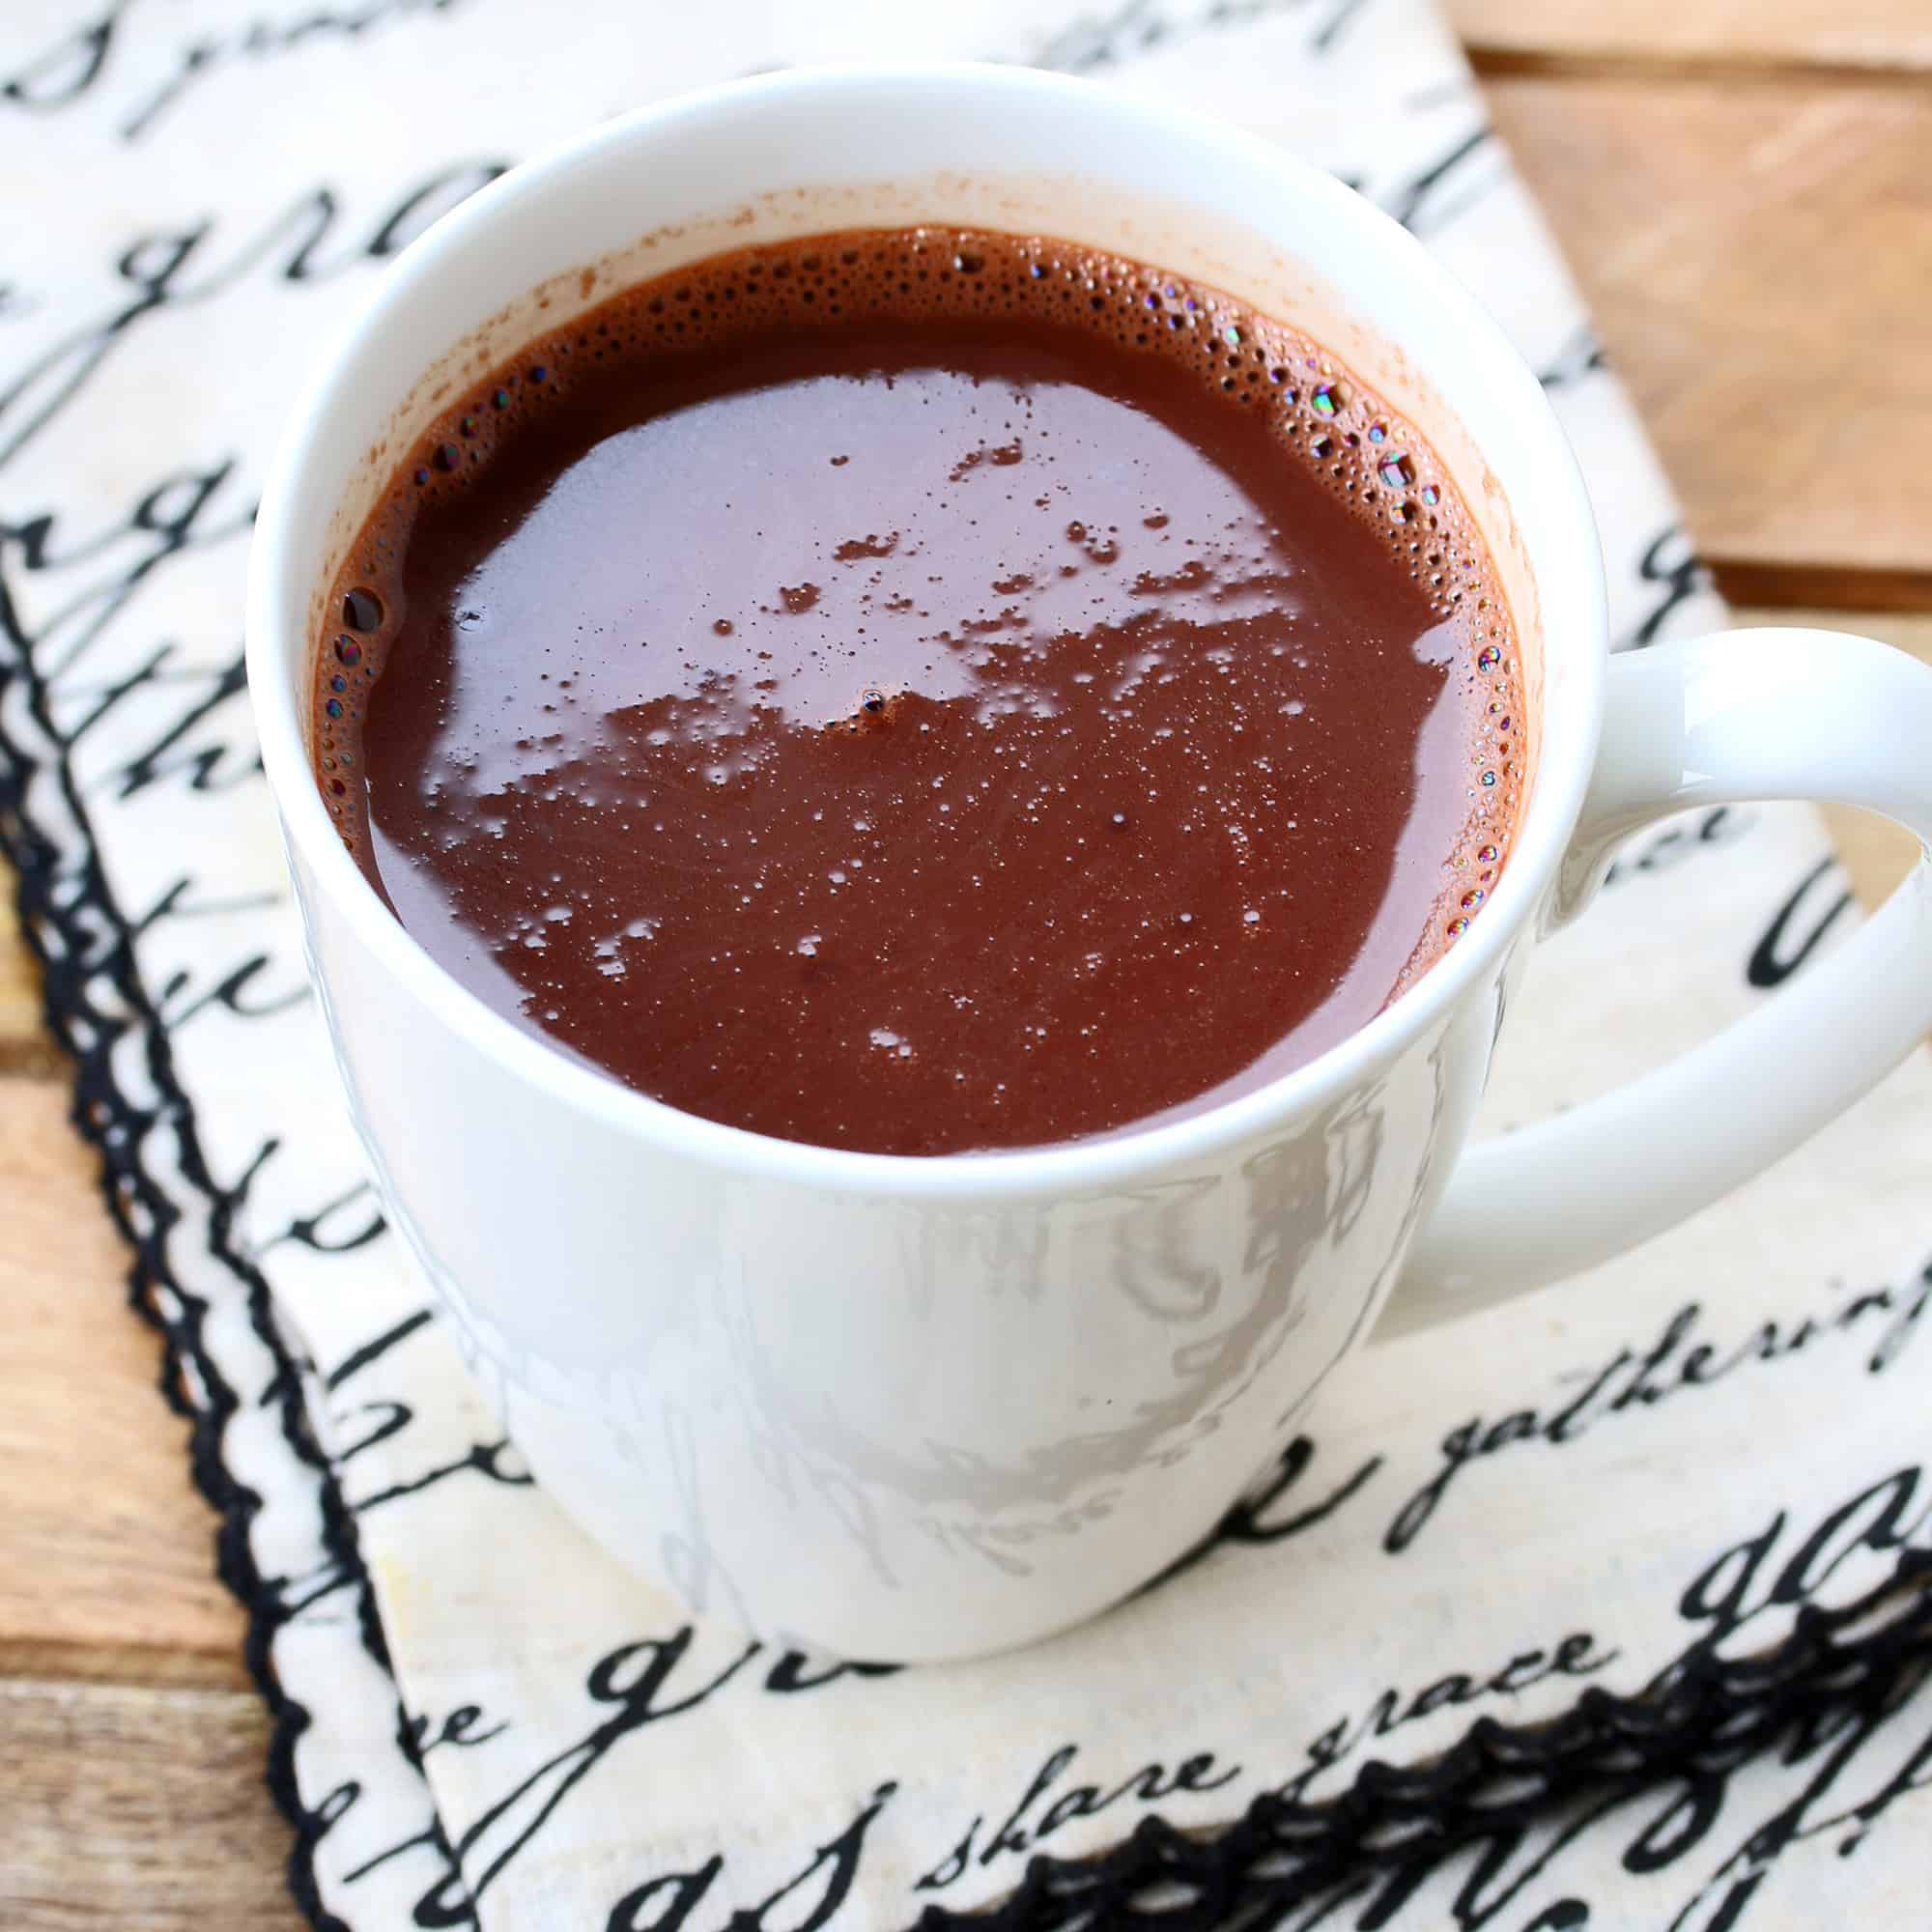 french parisian hot chocolate recipe european authentic dark bittersweet low sugar